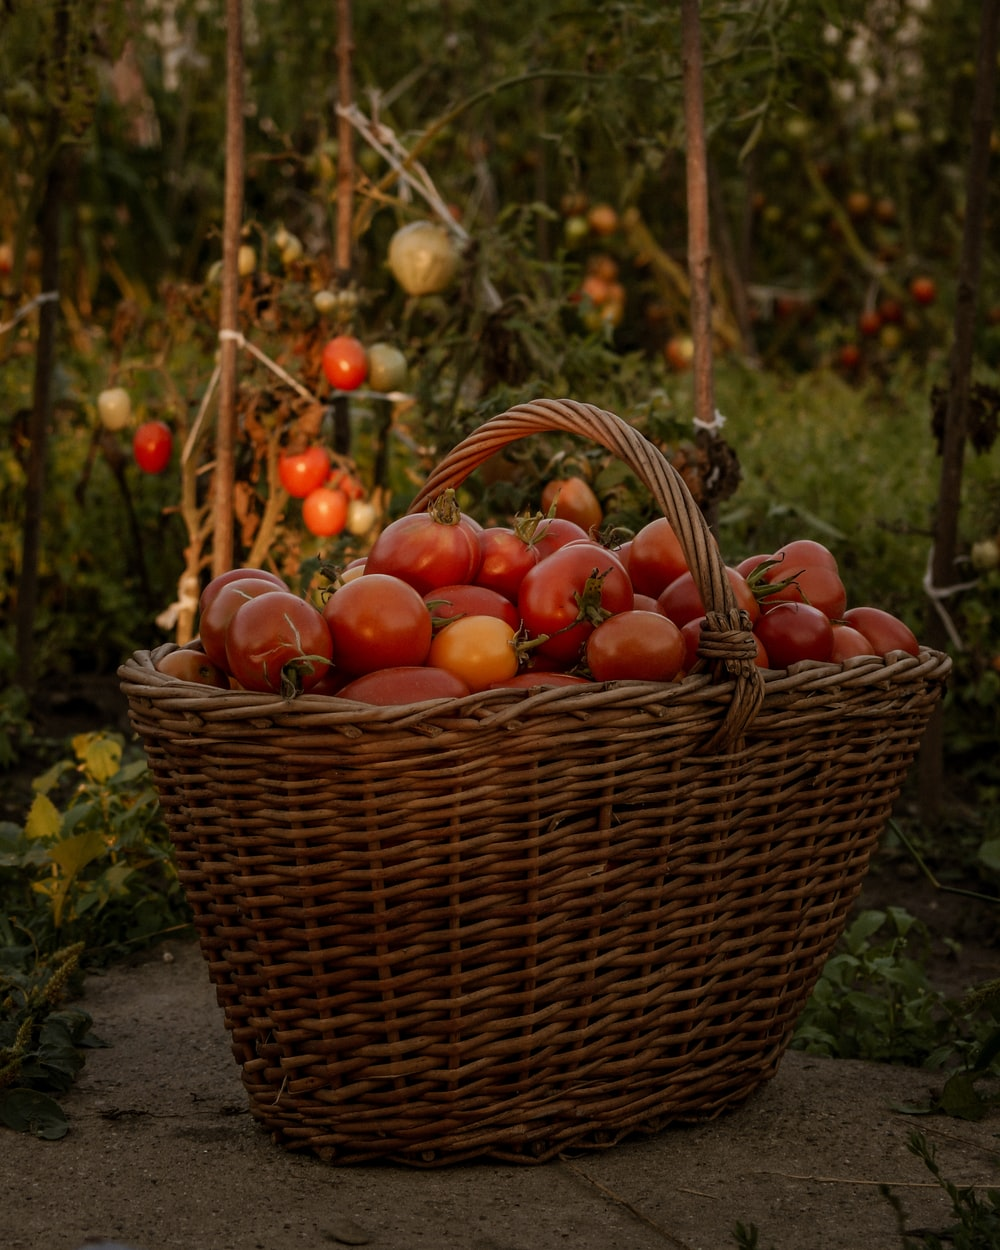 red and yellow round fruits in brown woven basket